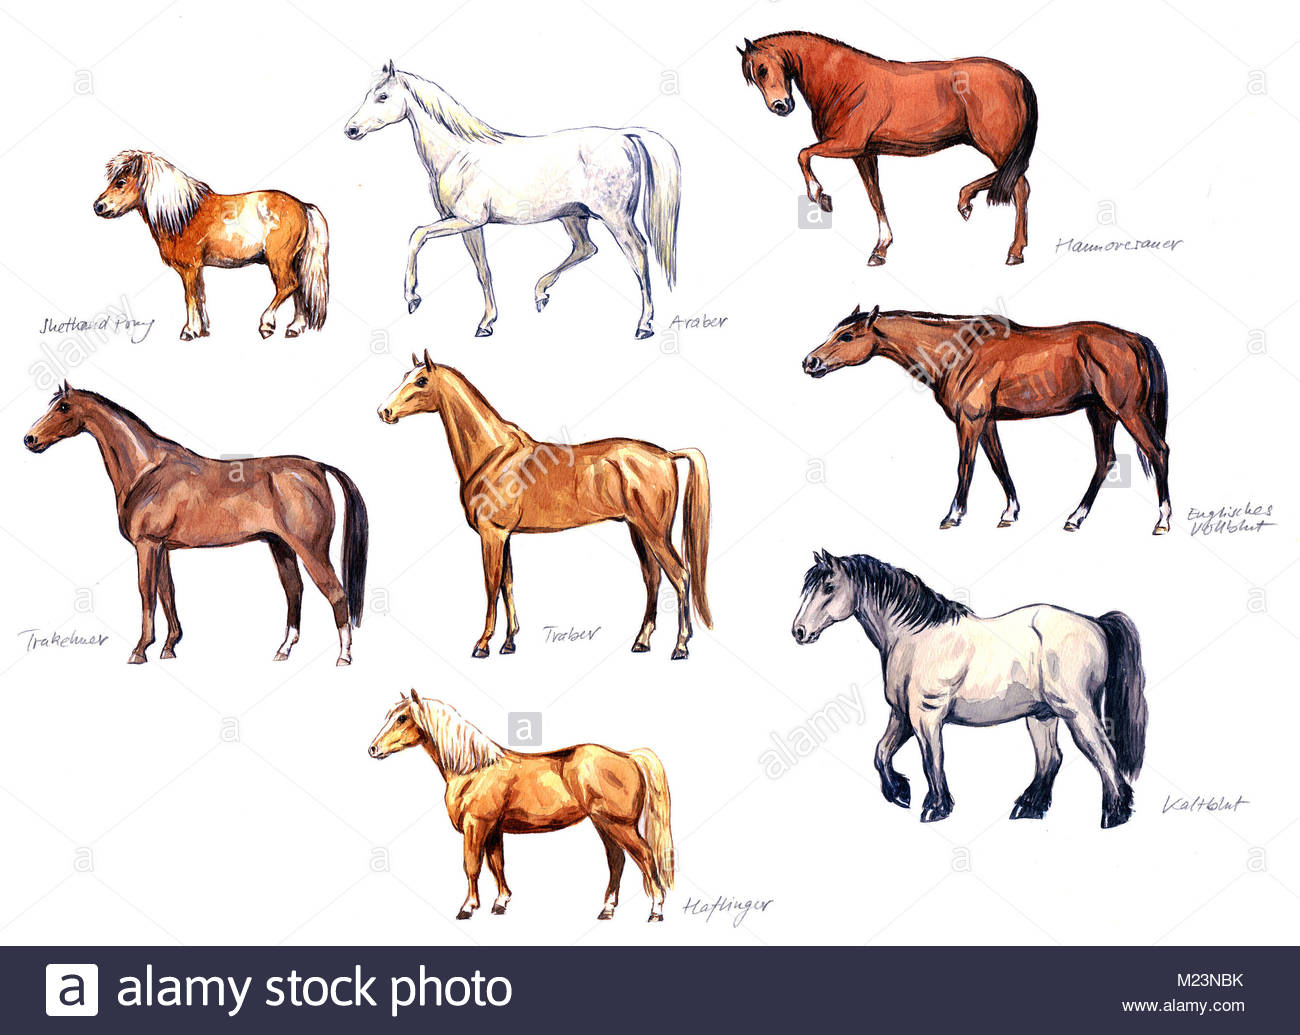 All Horse Breeds with Pictures Caballo Horsemarket]